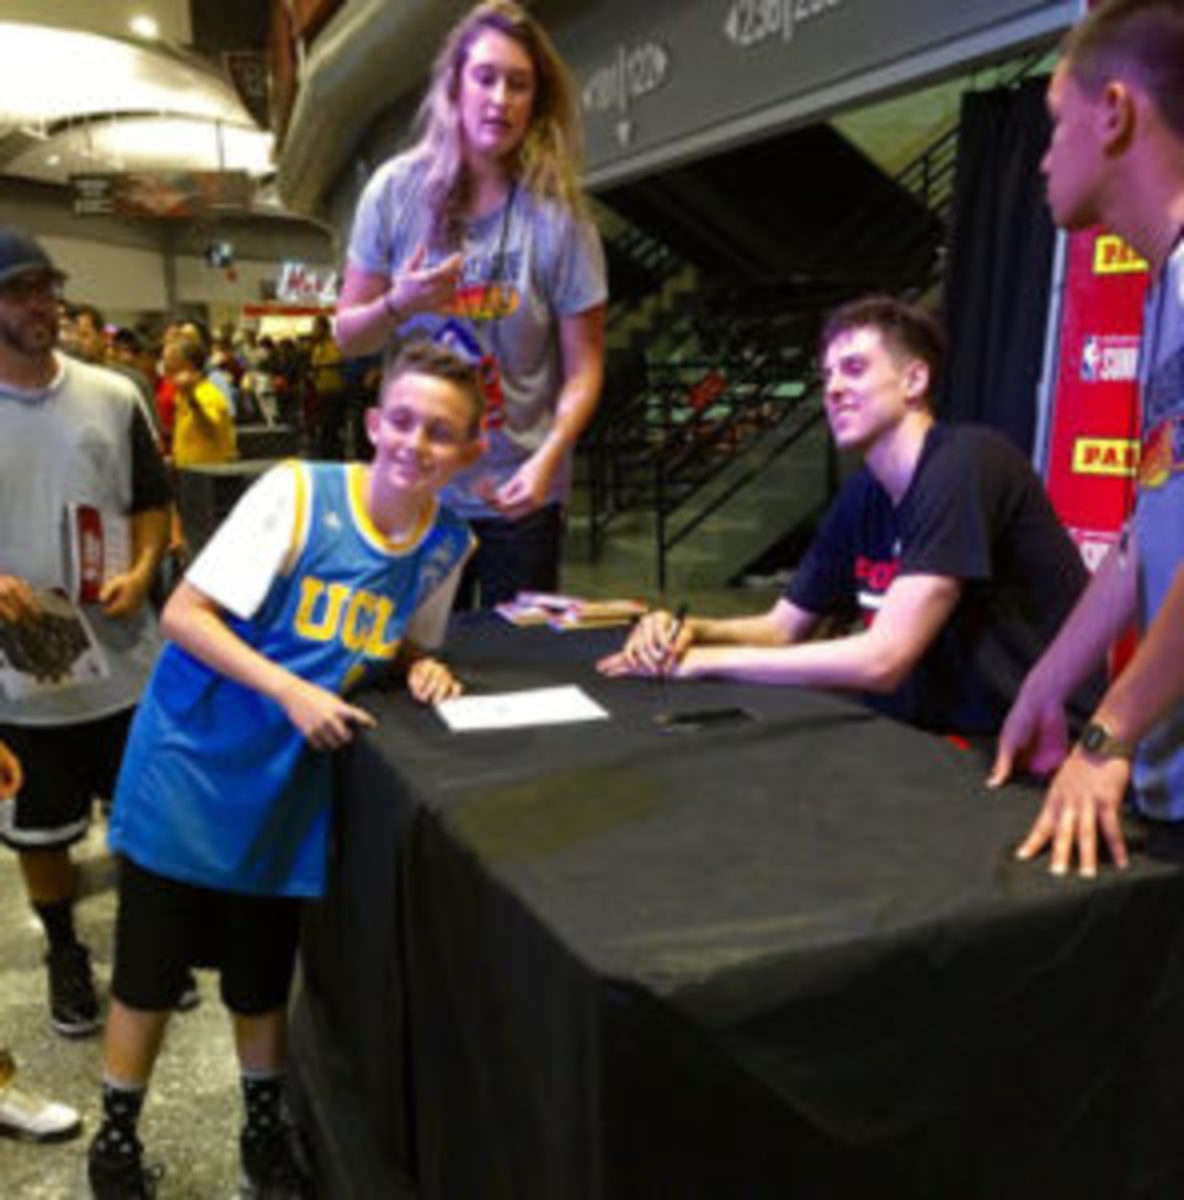 Zach Collins of the Portland Trailblazers takes time at the autograph table to pose for a photo with a fan.